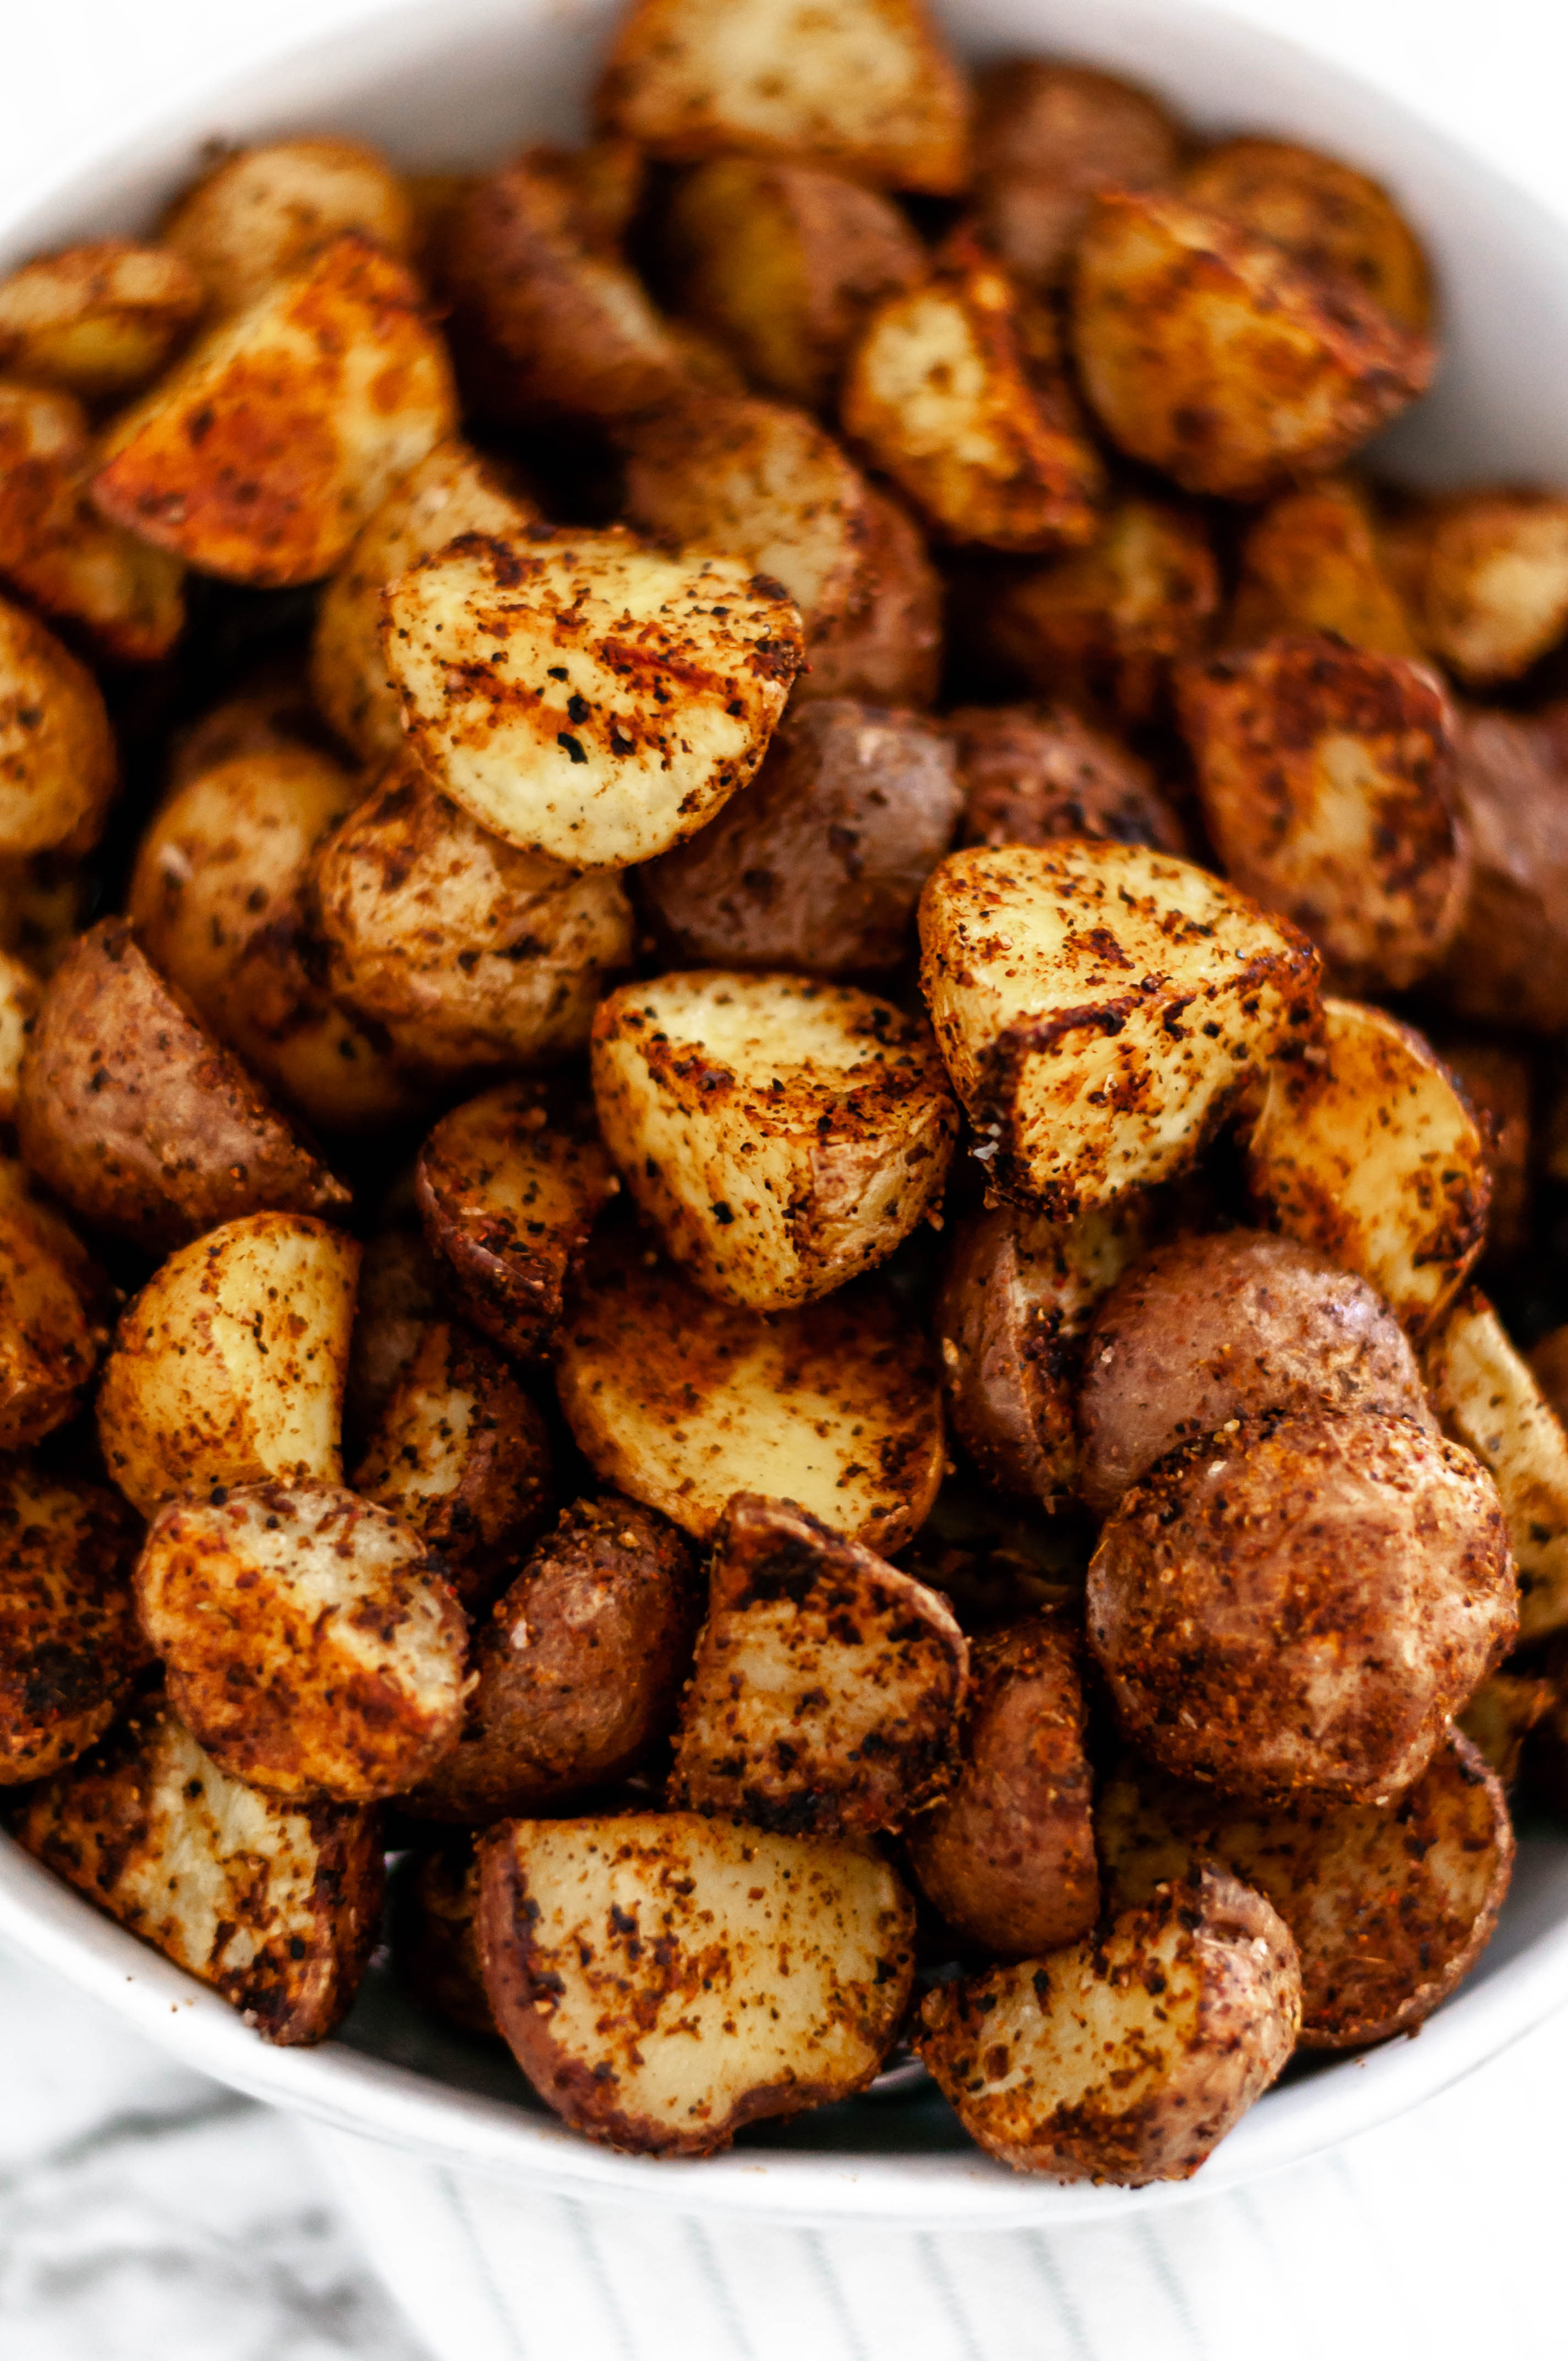 These Taco Roasted Potatoes are spiced up with your favorite taco spices. They make the perfect weeknight side dish, done in less than 30 minutes.